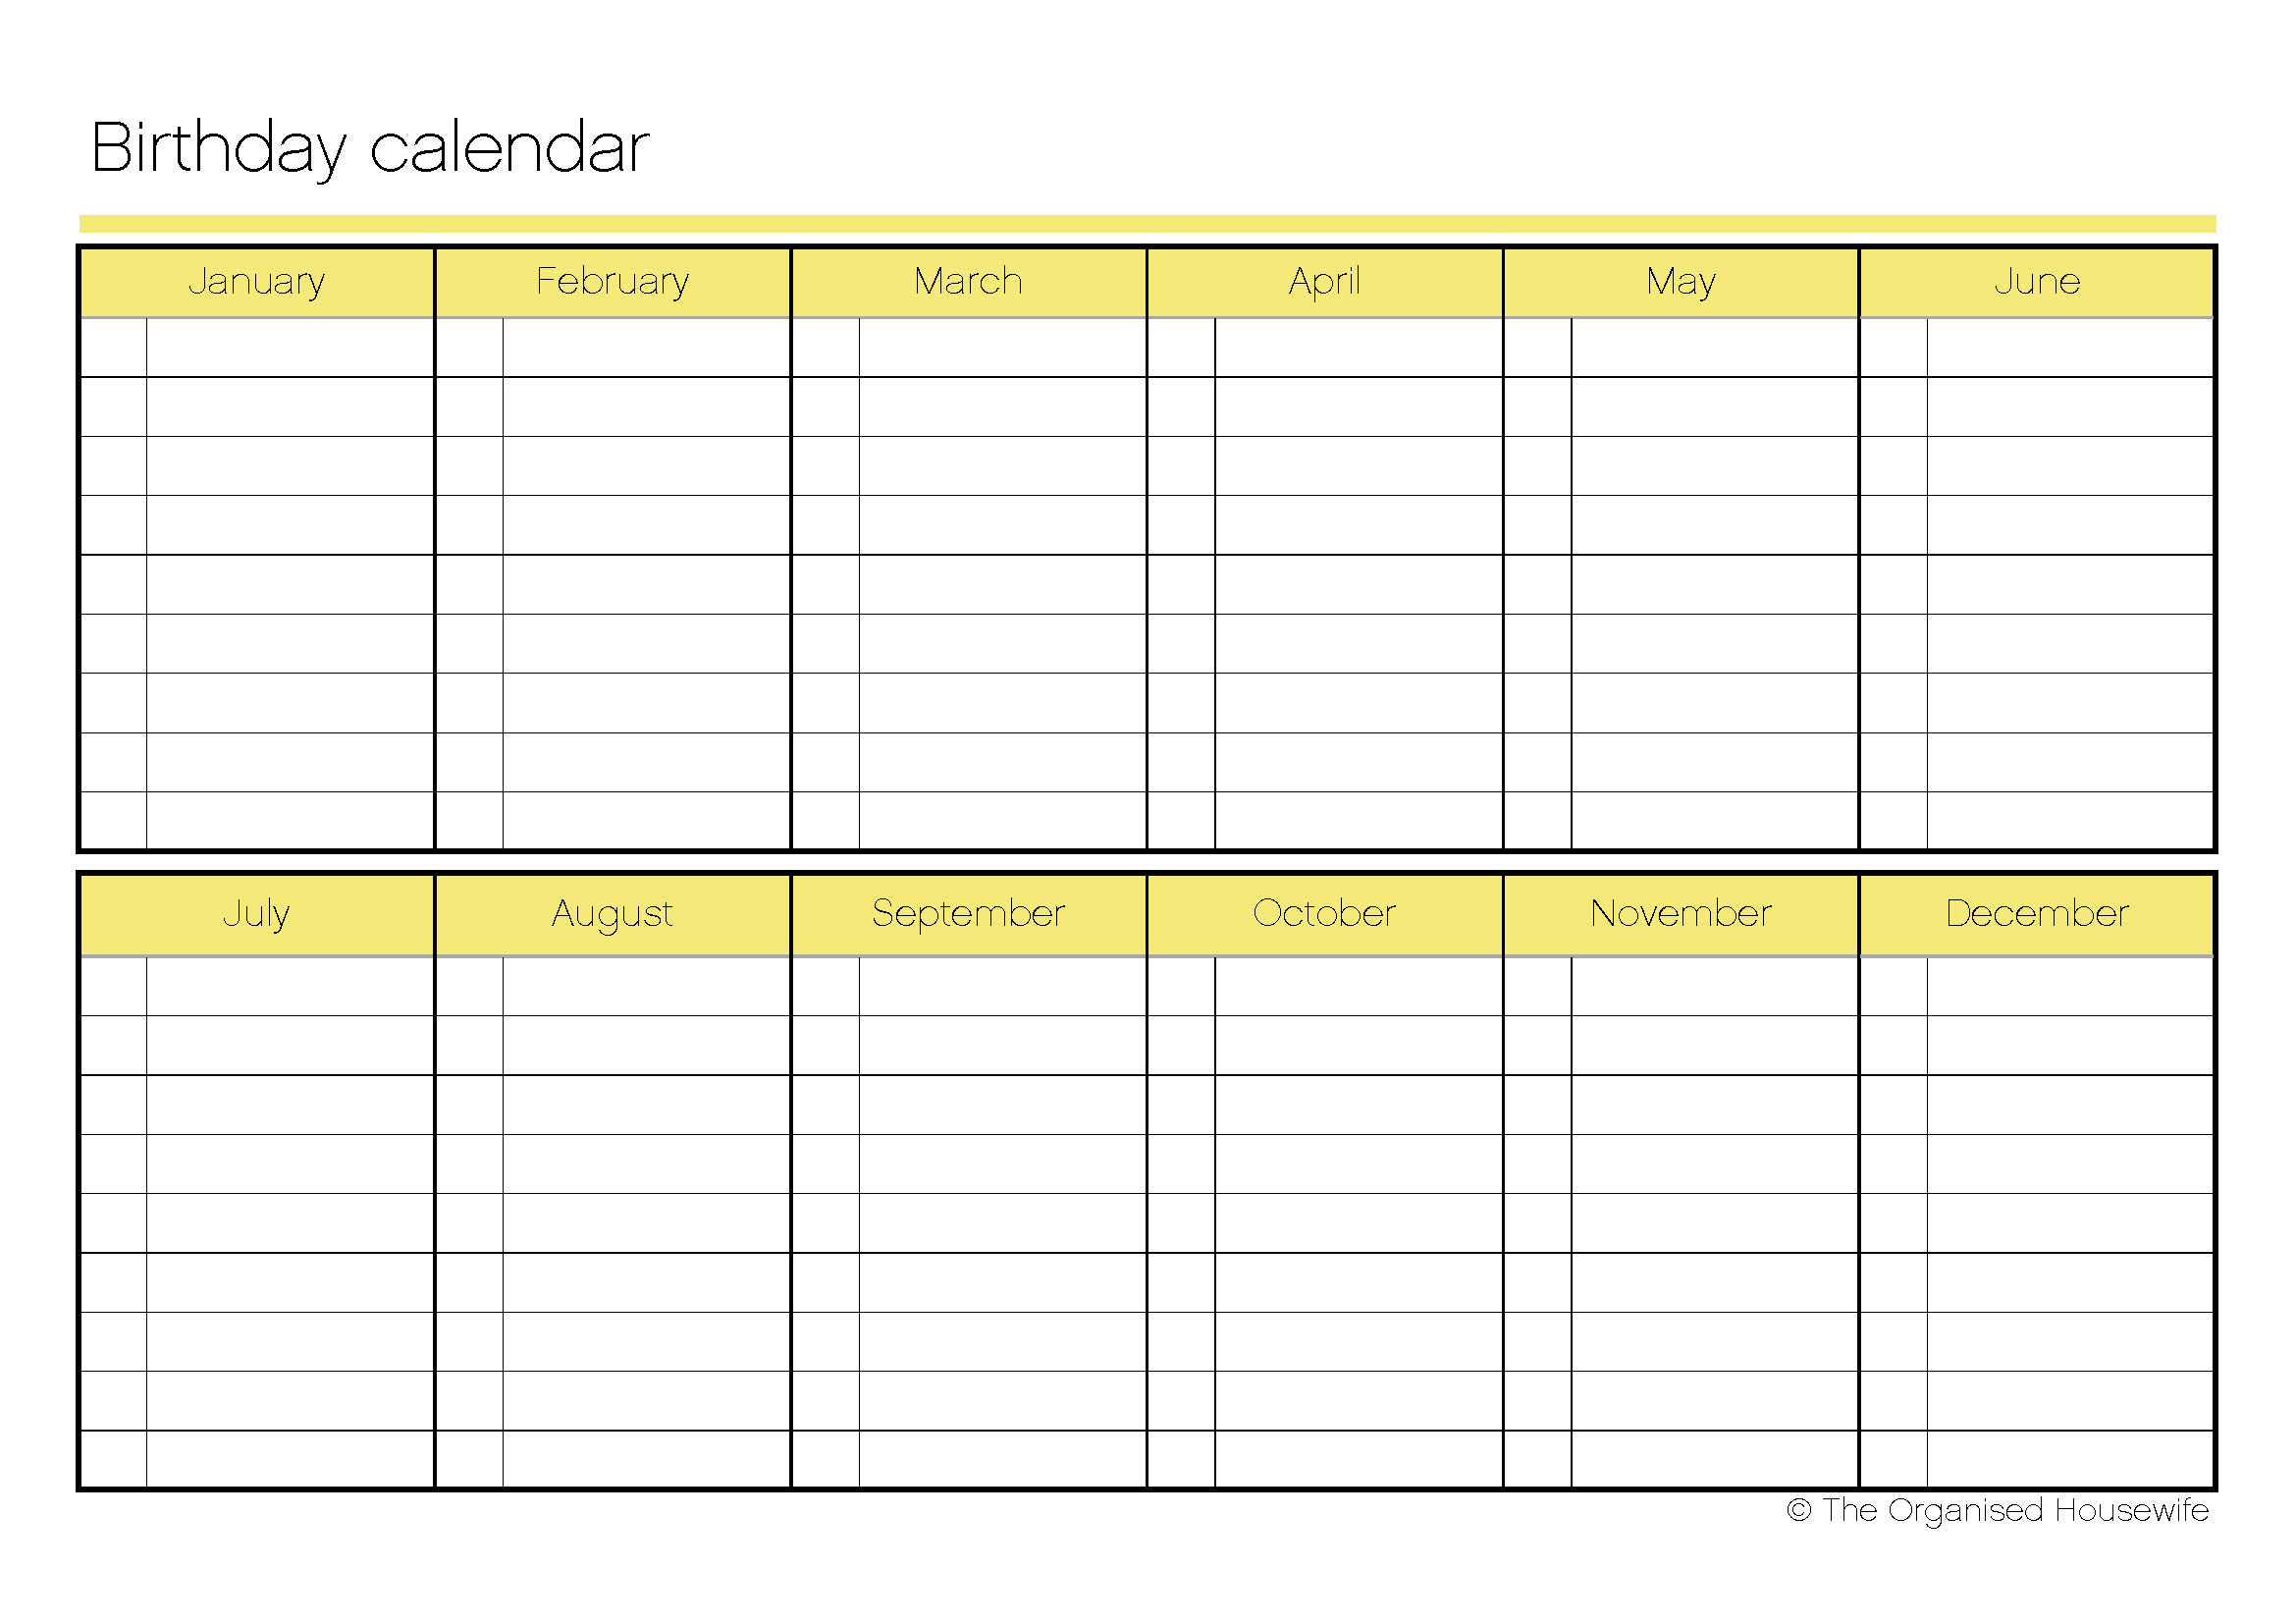 Blank Calendar List : Printable birthday calendar the organised housewife